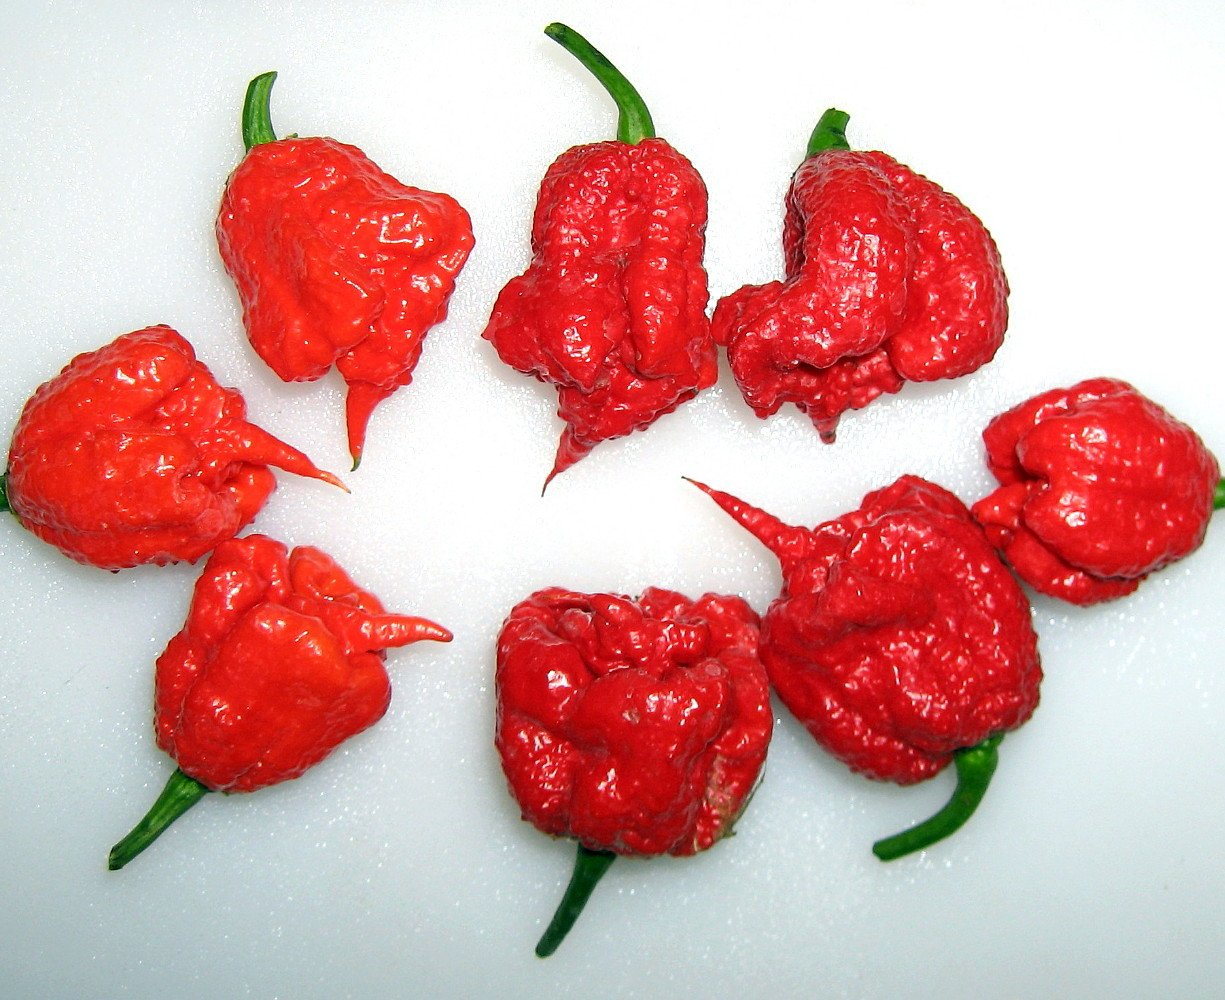 Carolina Reaper Pepper - 4 Live Plants - World's Hottest Pepper -Fear the Reaper by Hirts: Pepper (Image #3)